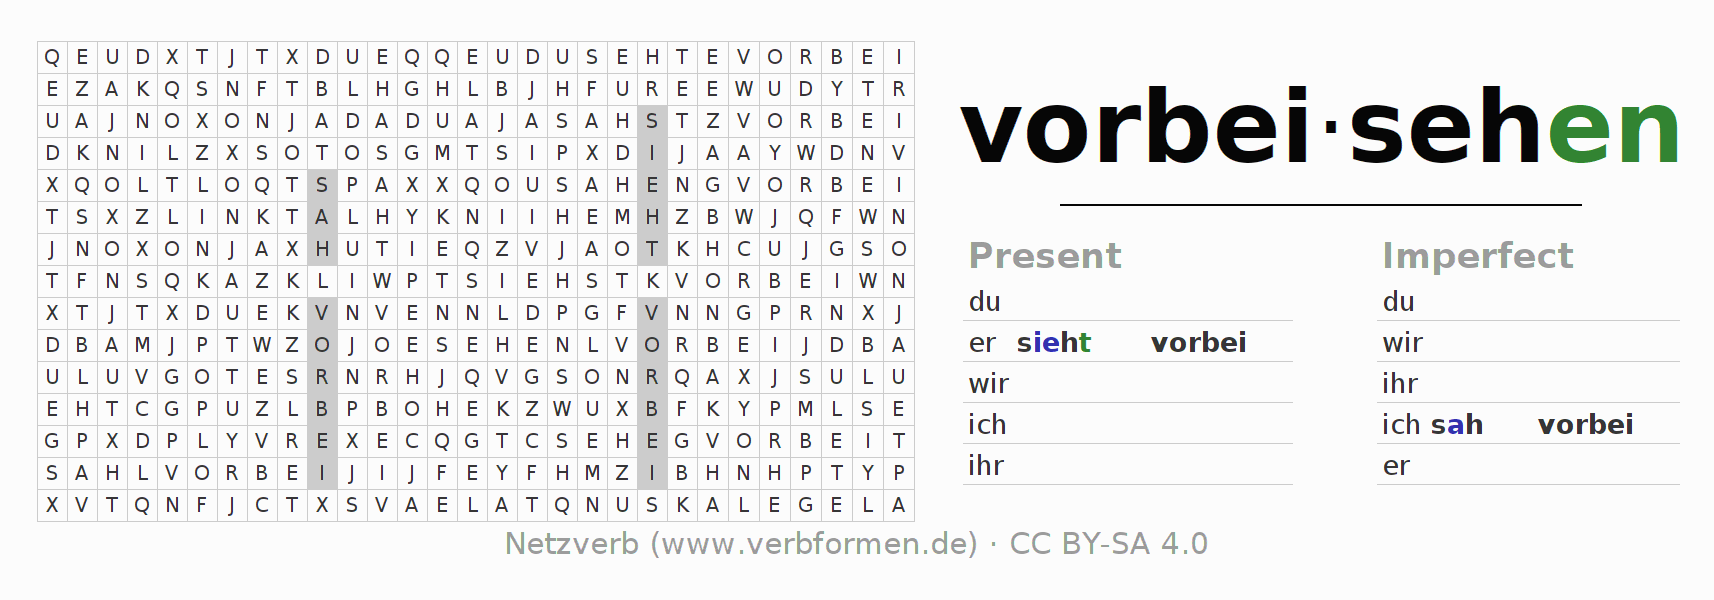 Word search puzzle for the conjugation of the verb vorbeisehen